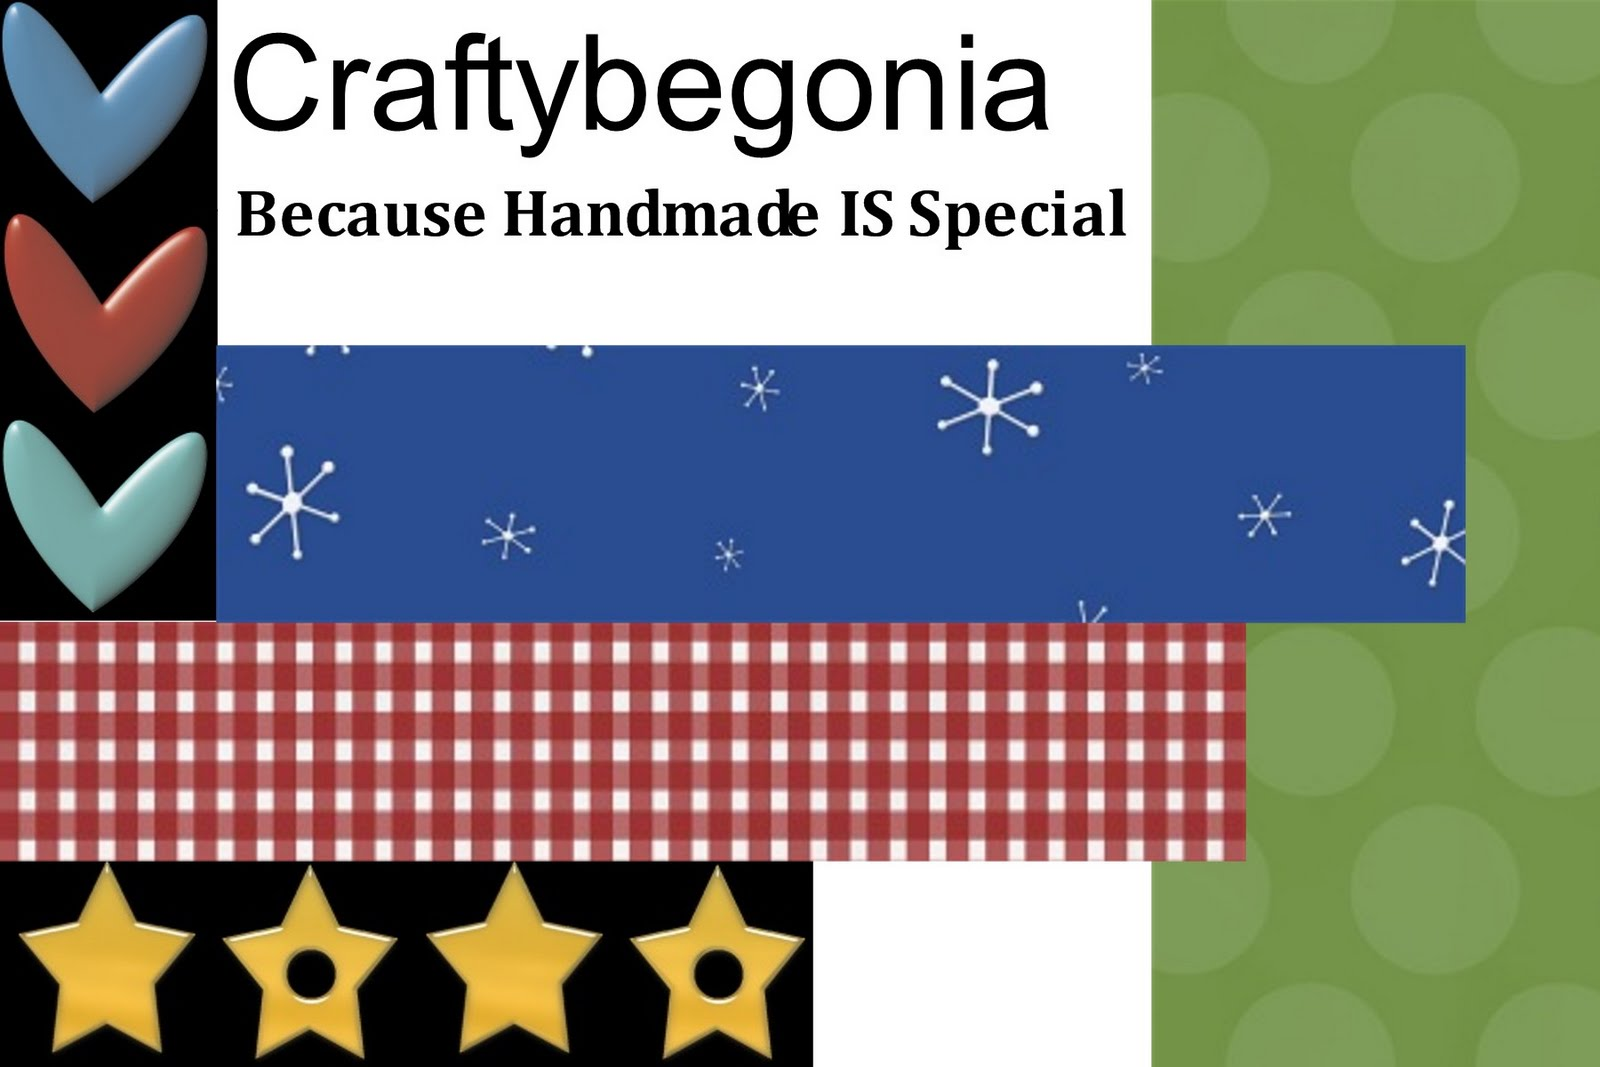 craftybegonia because handmade IS special4